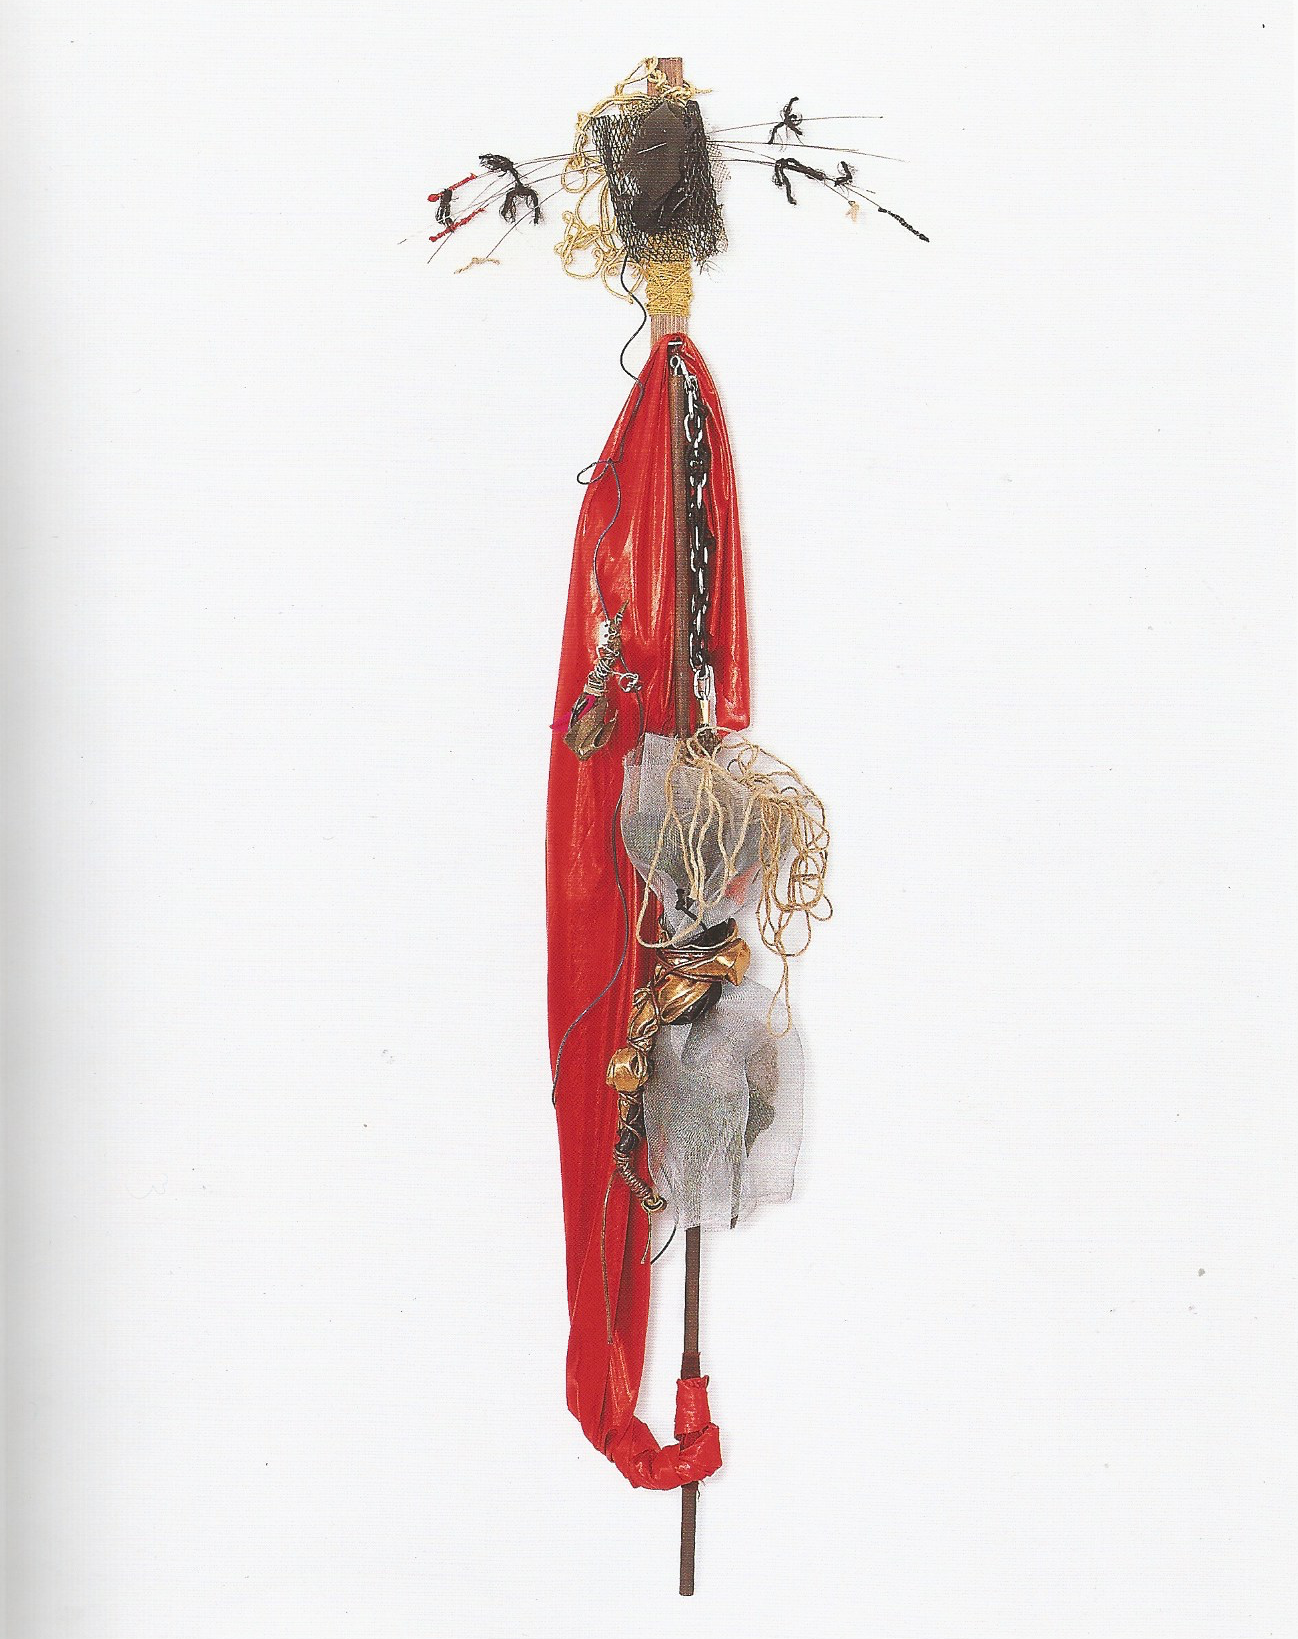 """Re née Lerner: Ruby-robed Woman   ,  Fabric, mesh, hemp, chain, cord, sponge, wires on wood,66"""" x 25""""x 8'', 2001"""